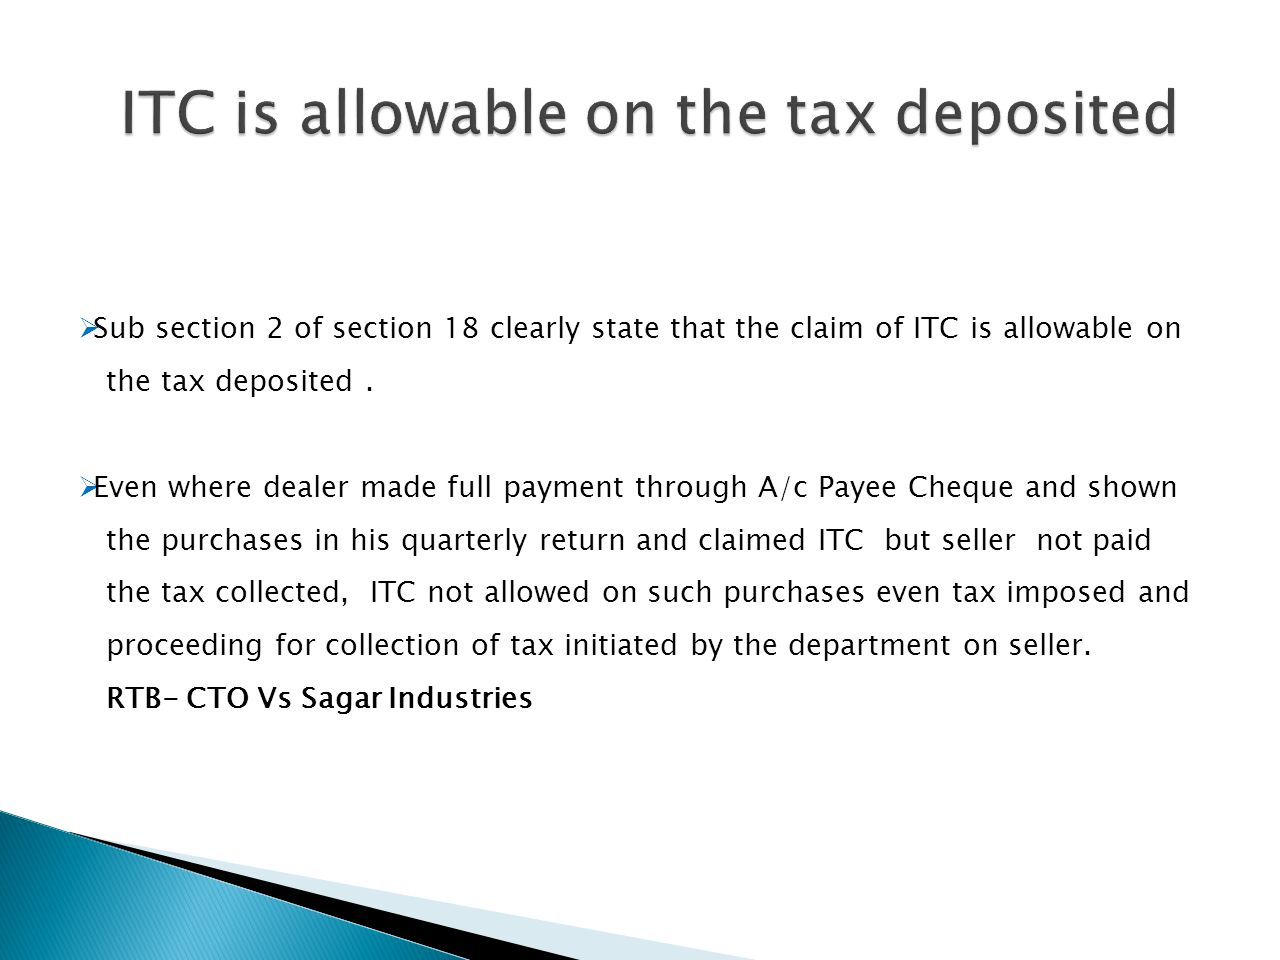 ITC is allowable on the tax deposited